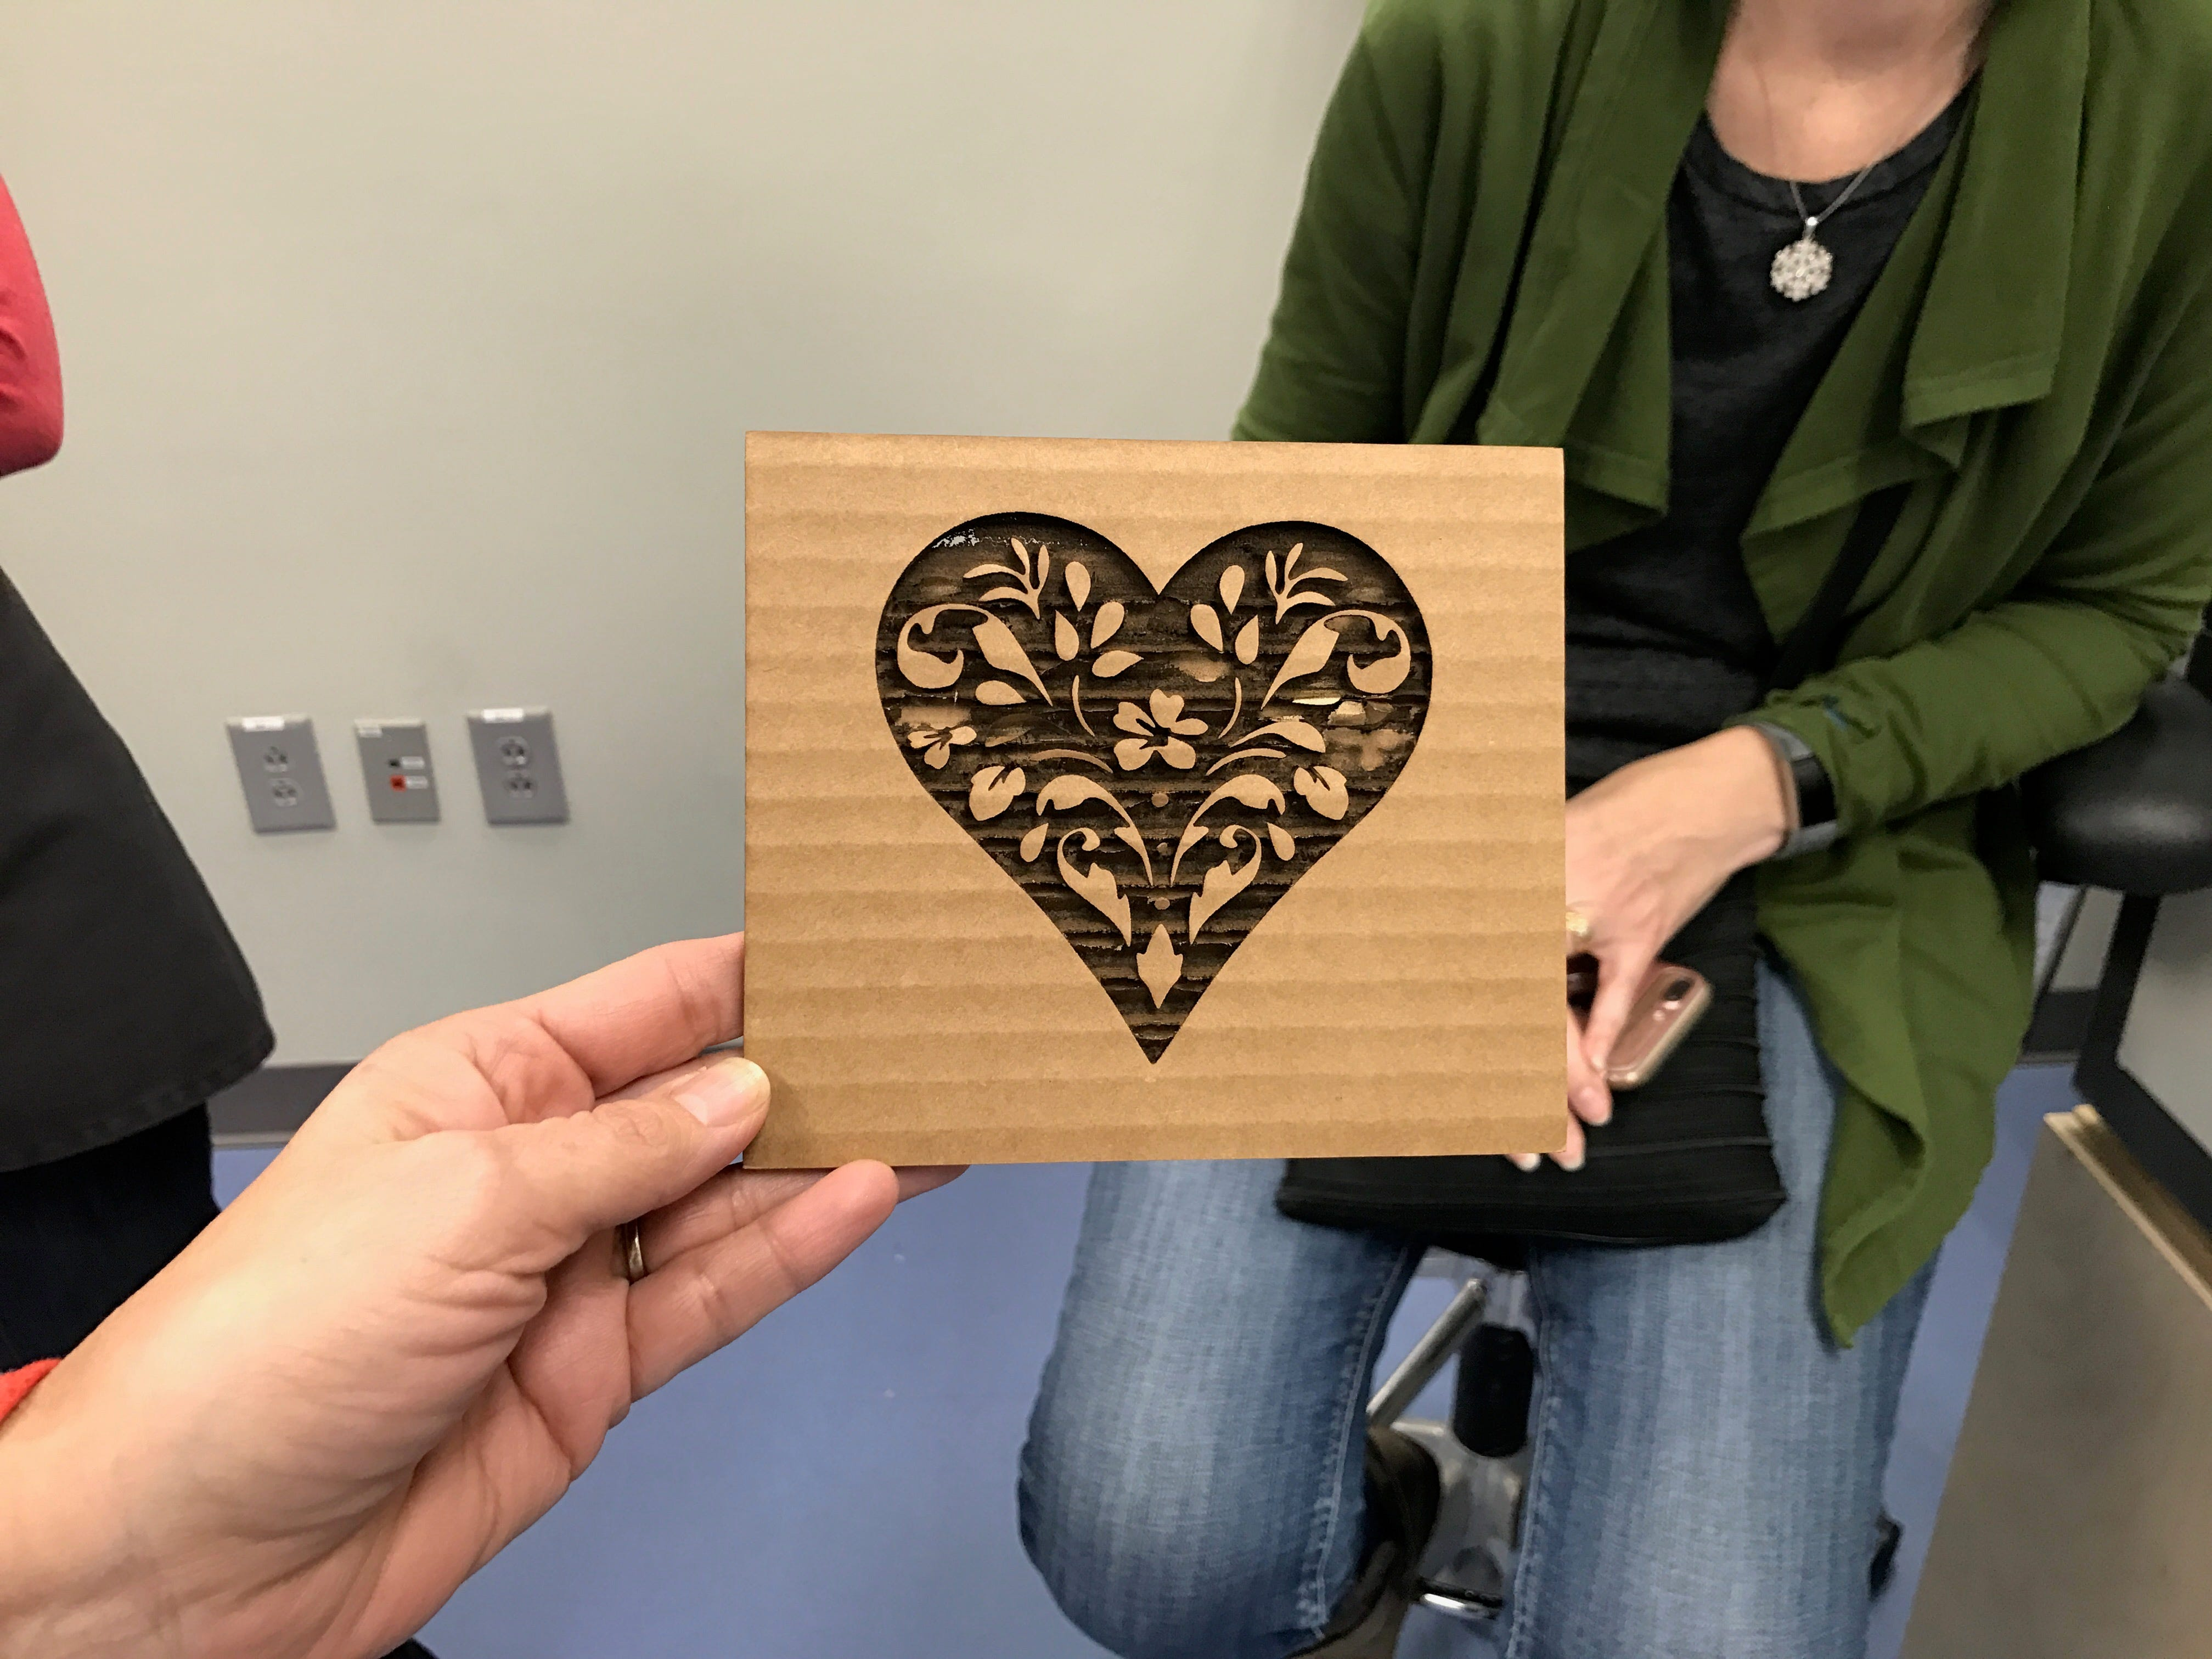 A decoration created with a laser engraver at Ignite Art Studio and Makerspace in Fishers